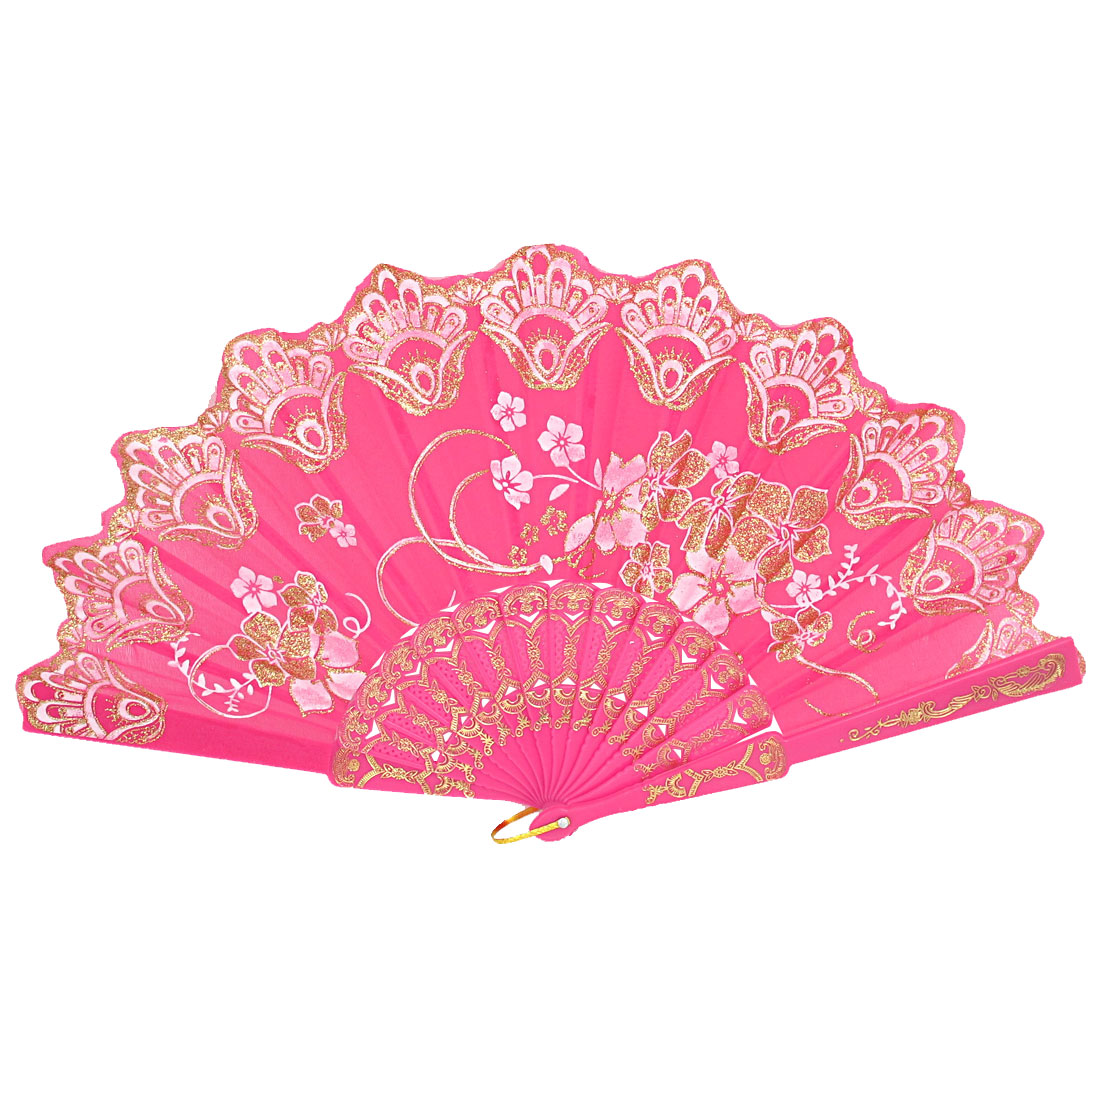 Women Carved Ribs Glittery Powder Decor Flower Pattern Folding Hand Fan Fuchsia